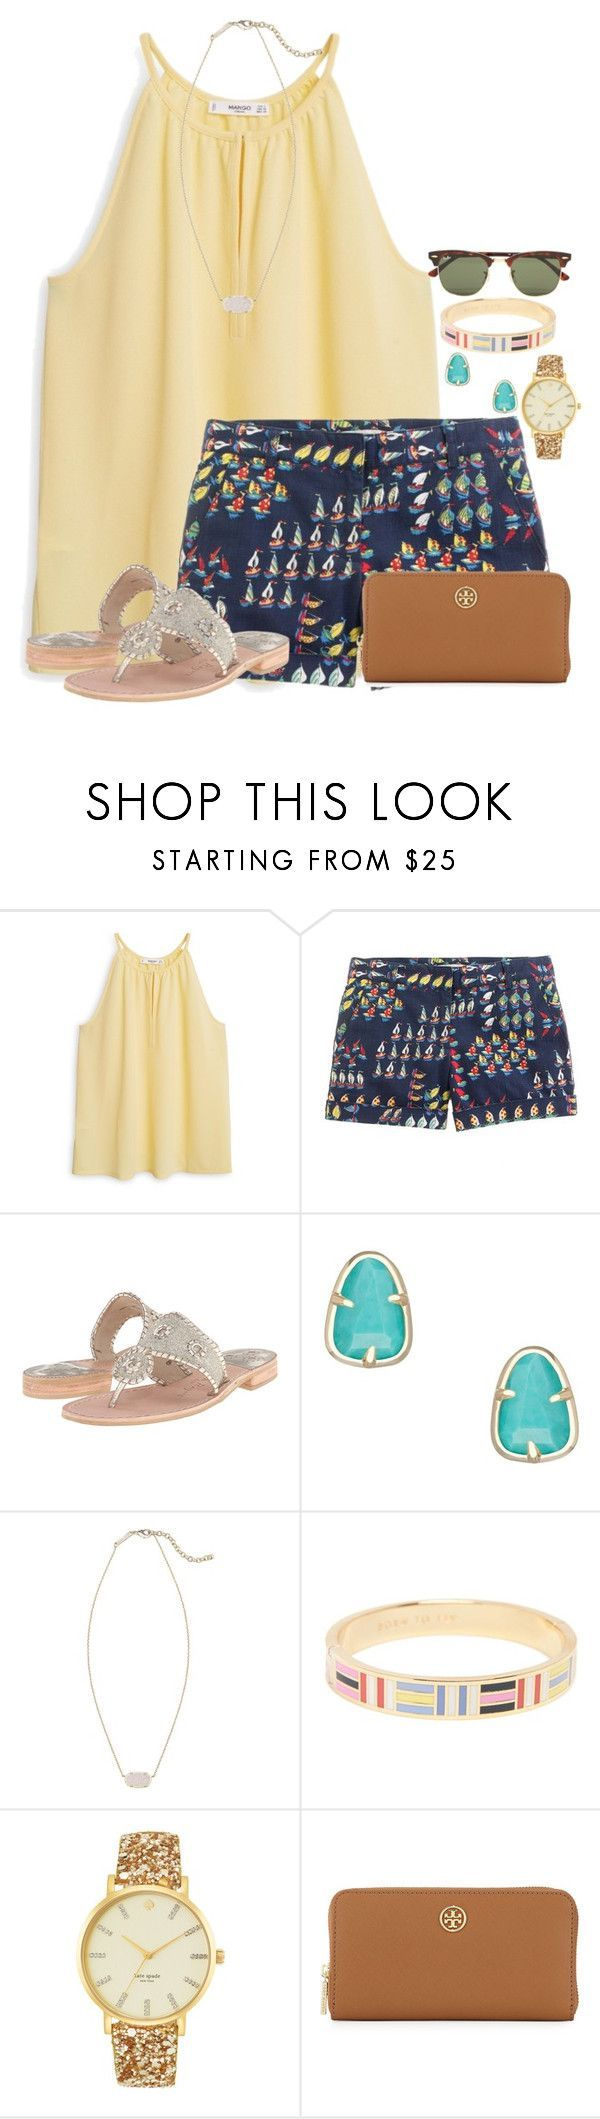 """~sailboats on a summer day~"" by flroasburn ❤ liked on Polyvore featuring MANGO, J.Crew, Jack Rogers, Kendra Scott, Kate Spade, Tory Burch and Ray-Ban"